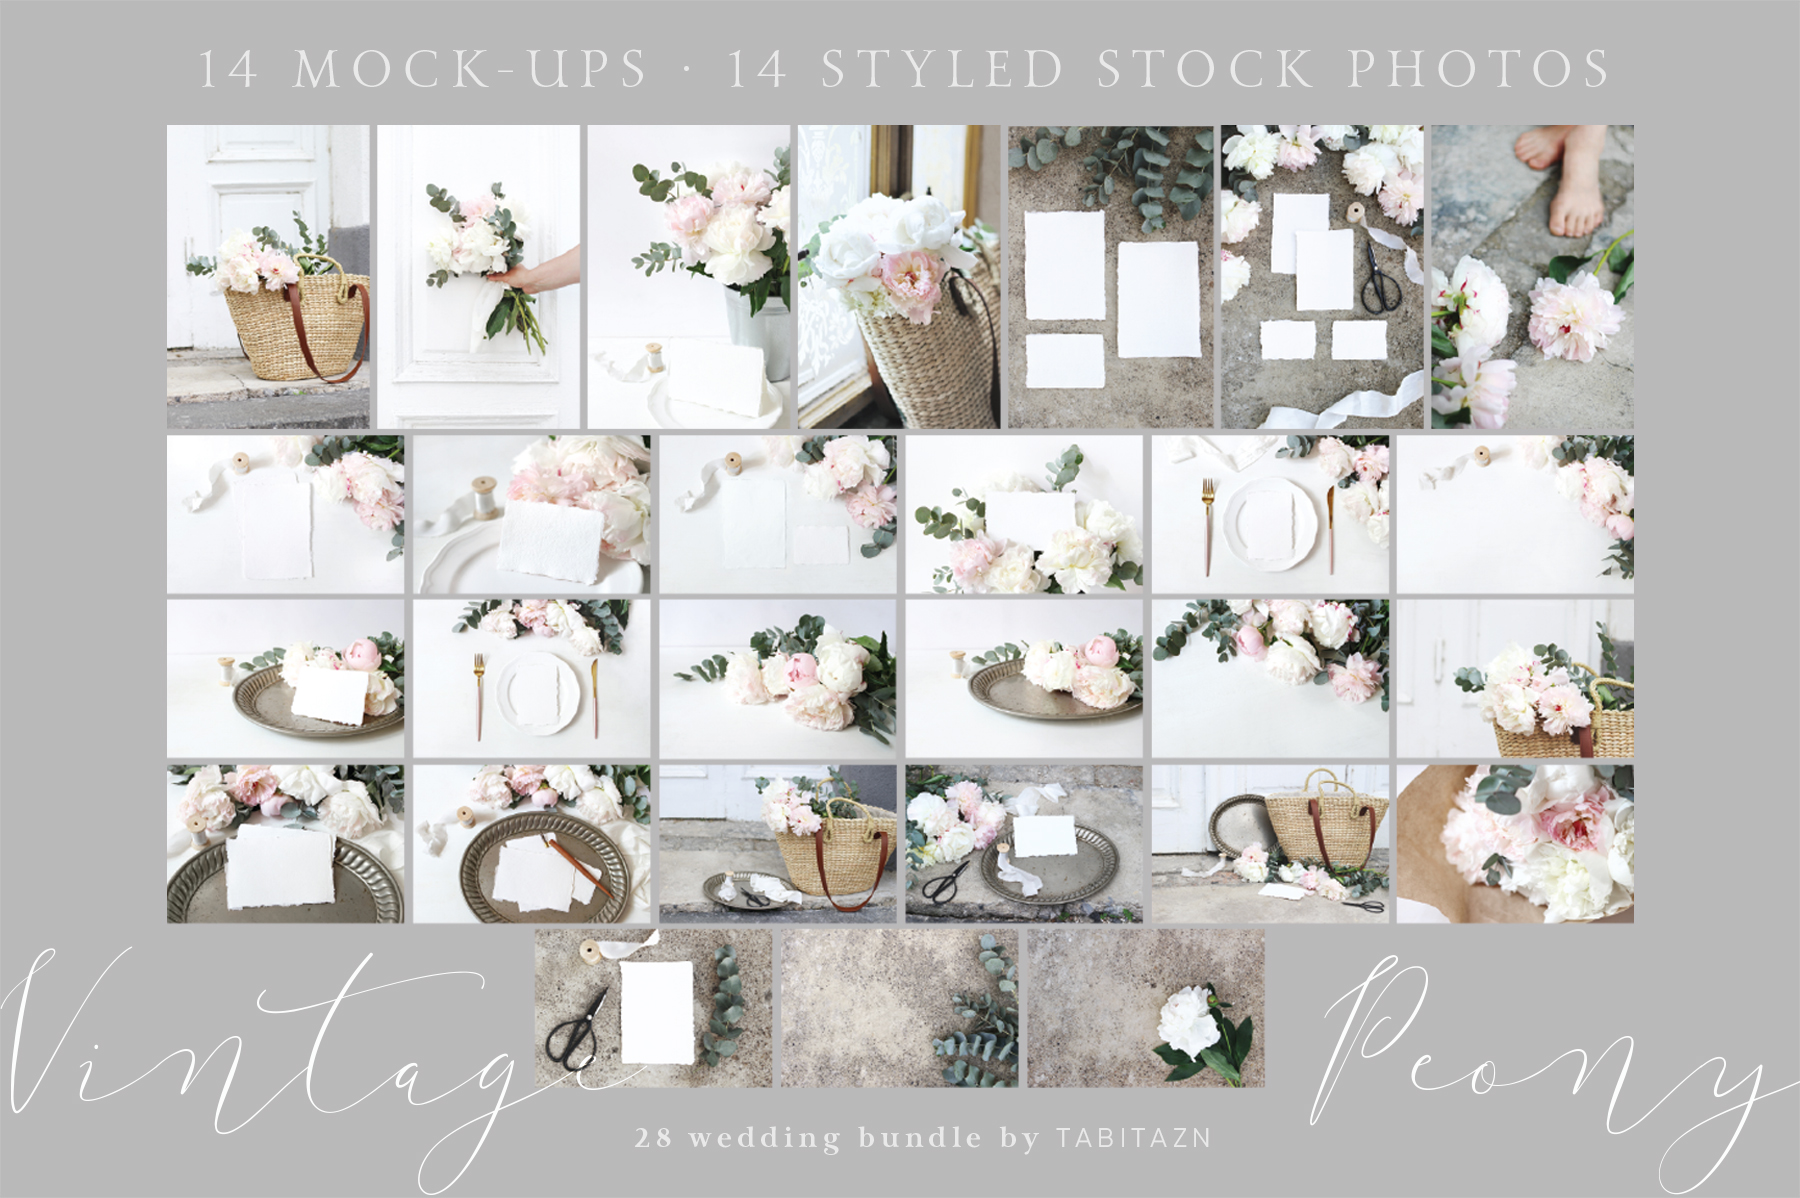 Vintage peony wedding mockups & stock photo bundle example image 11